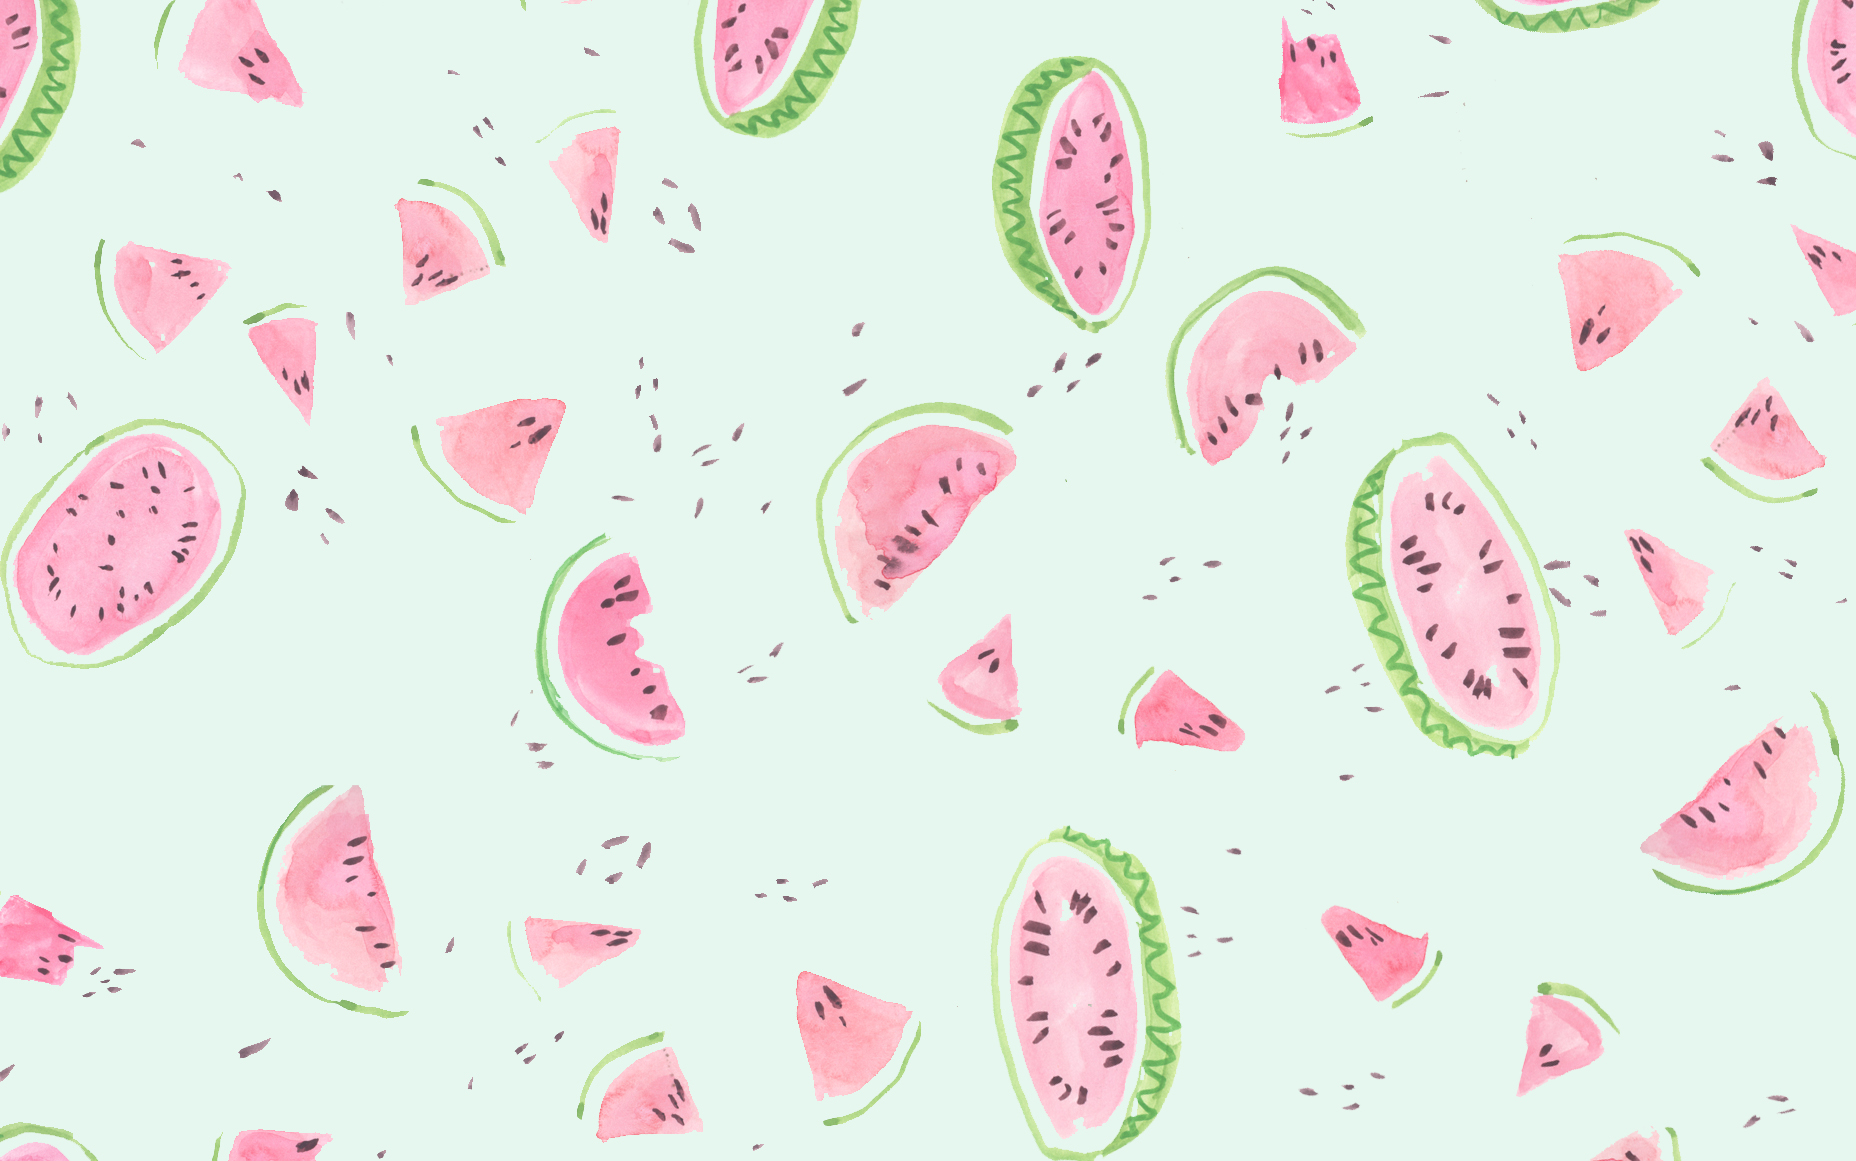 Maak je gadgets summer proof met deze zomerse wallpapers en screensavers fashionlab - Wallpaper voor hoofdeinde ...